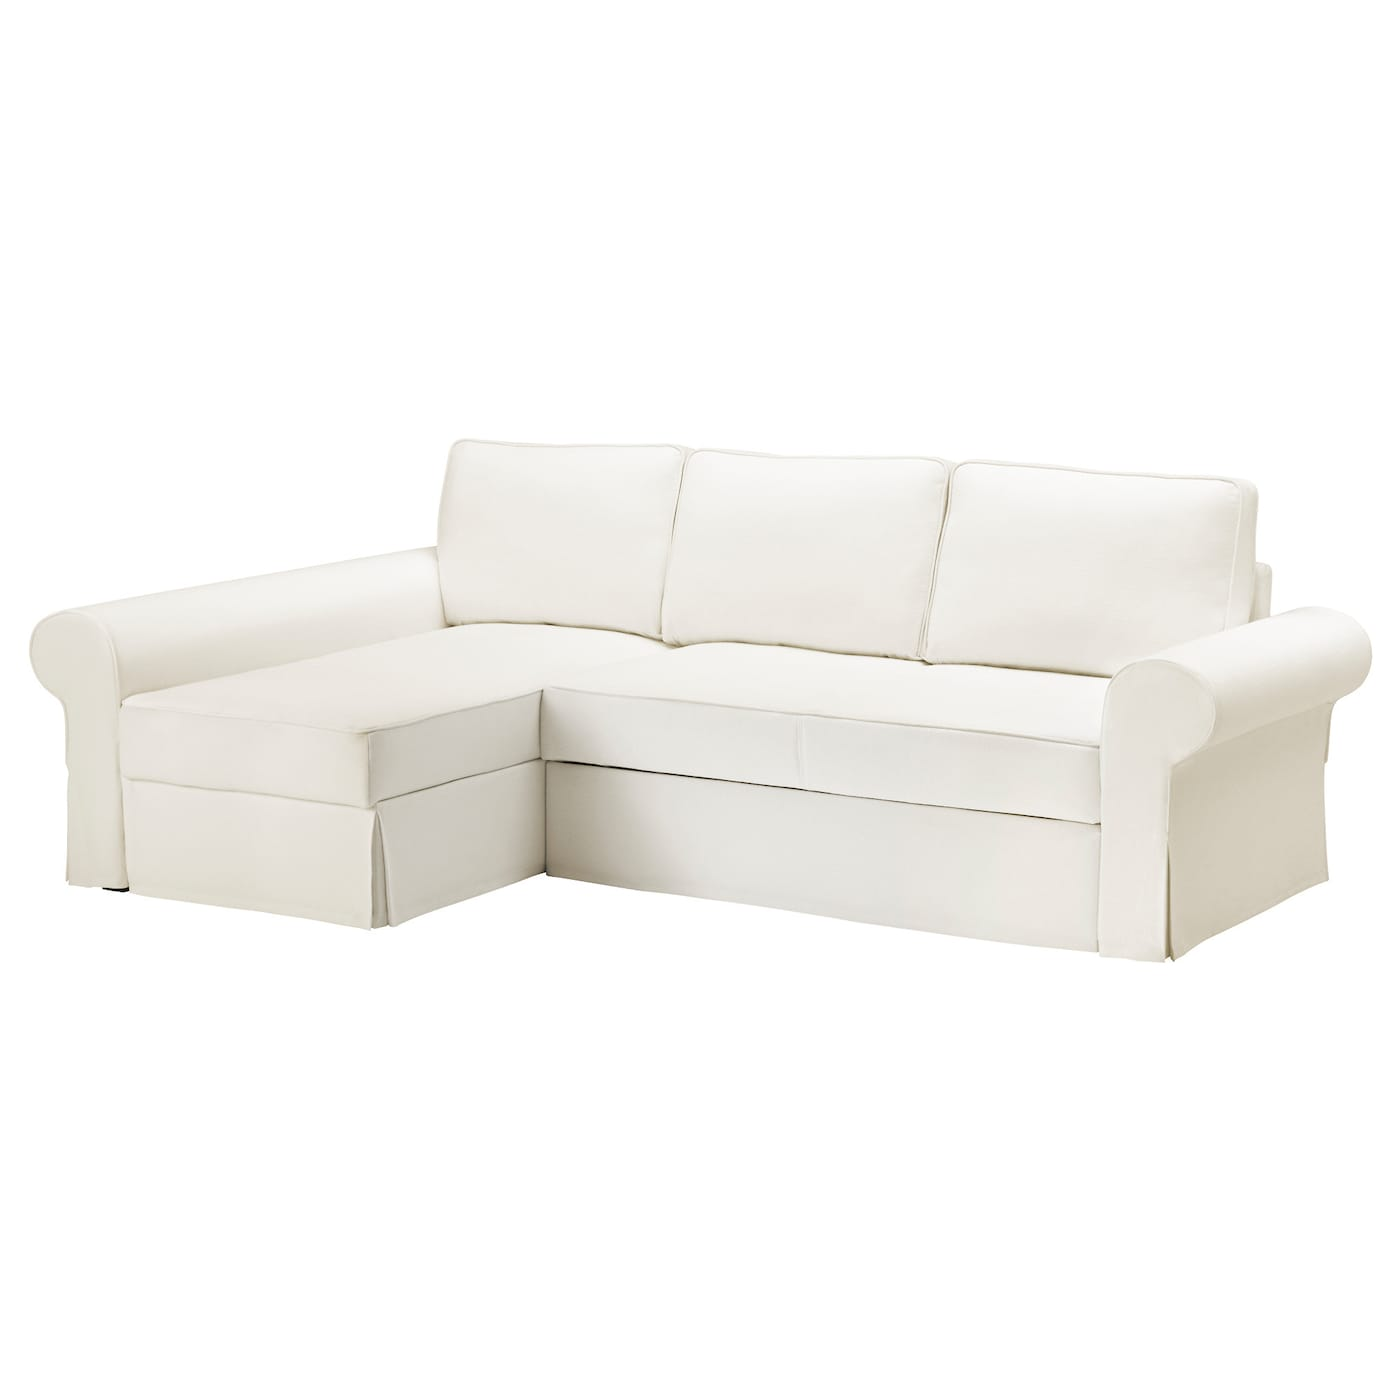 Backabro cover sofa bed with chaise longue hylte white ikea - Chaise longue sofa bed ...